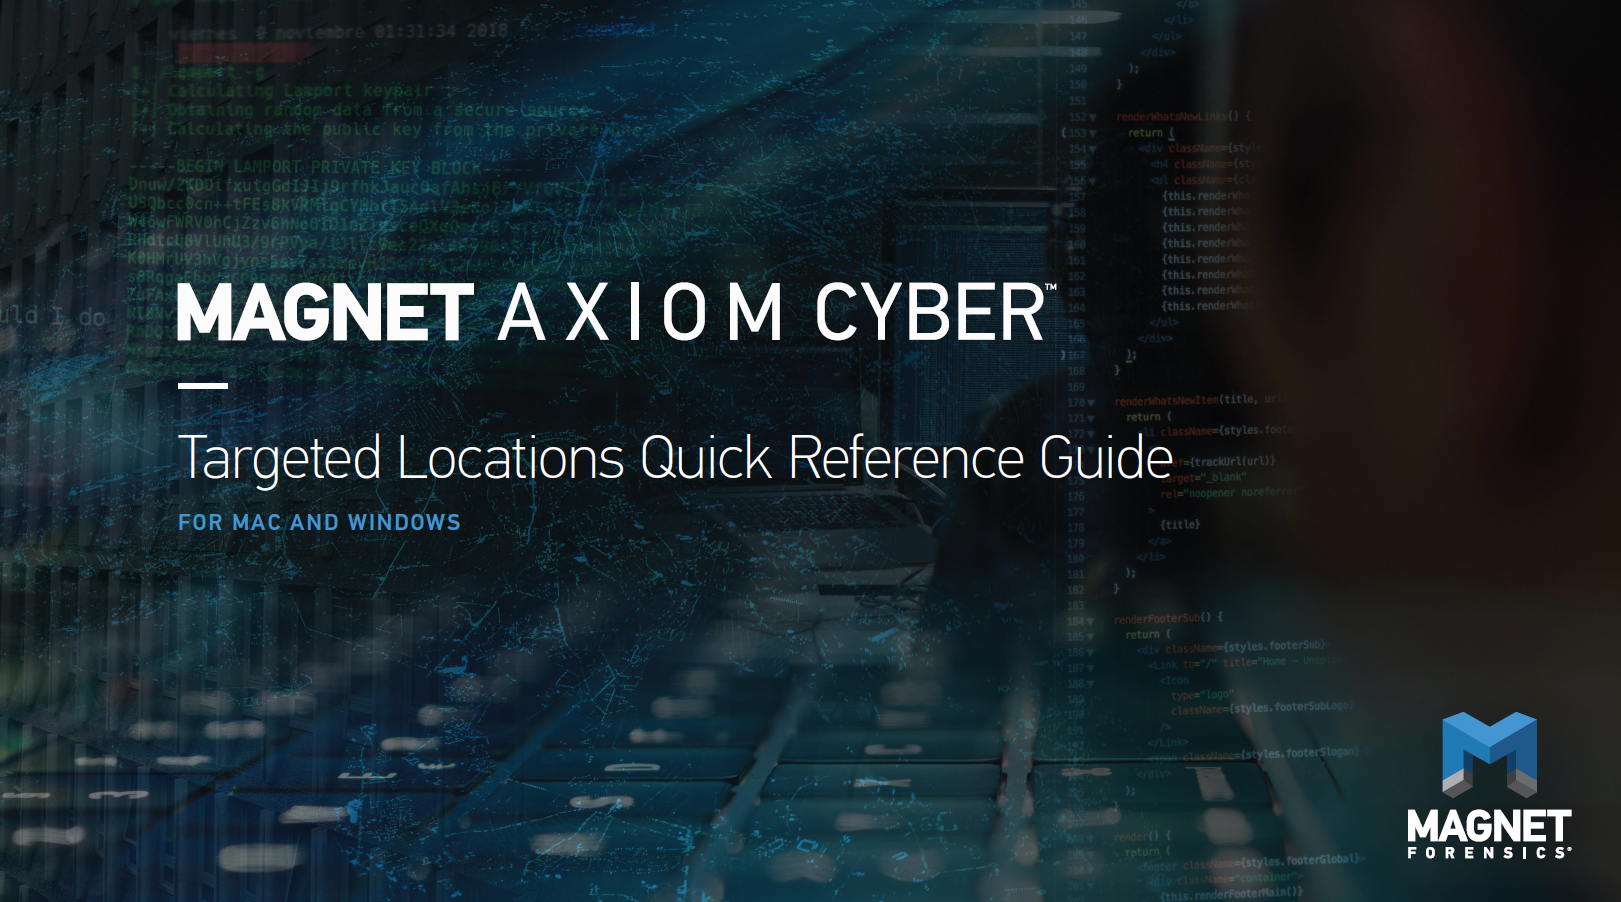 Magnet AXIOM Cyber: Targeted Locations Quick Reference Guide For Mac and Windows